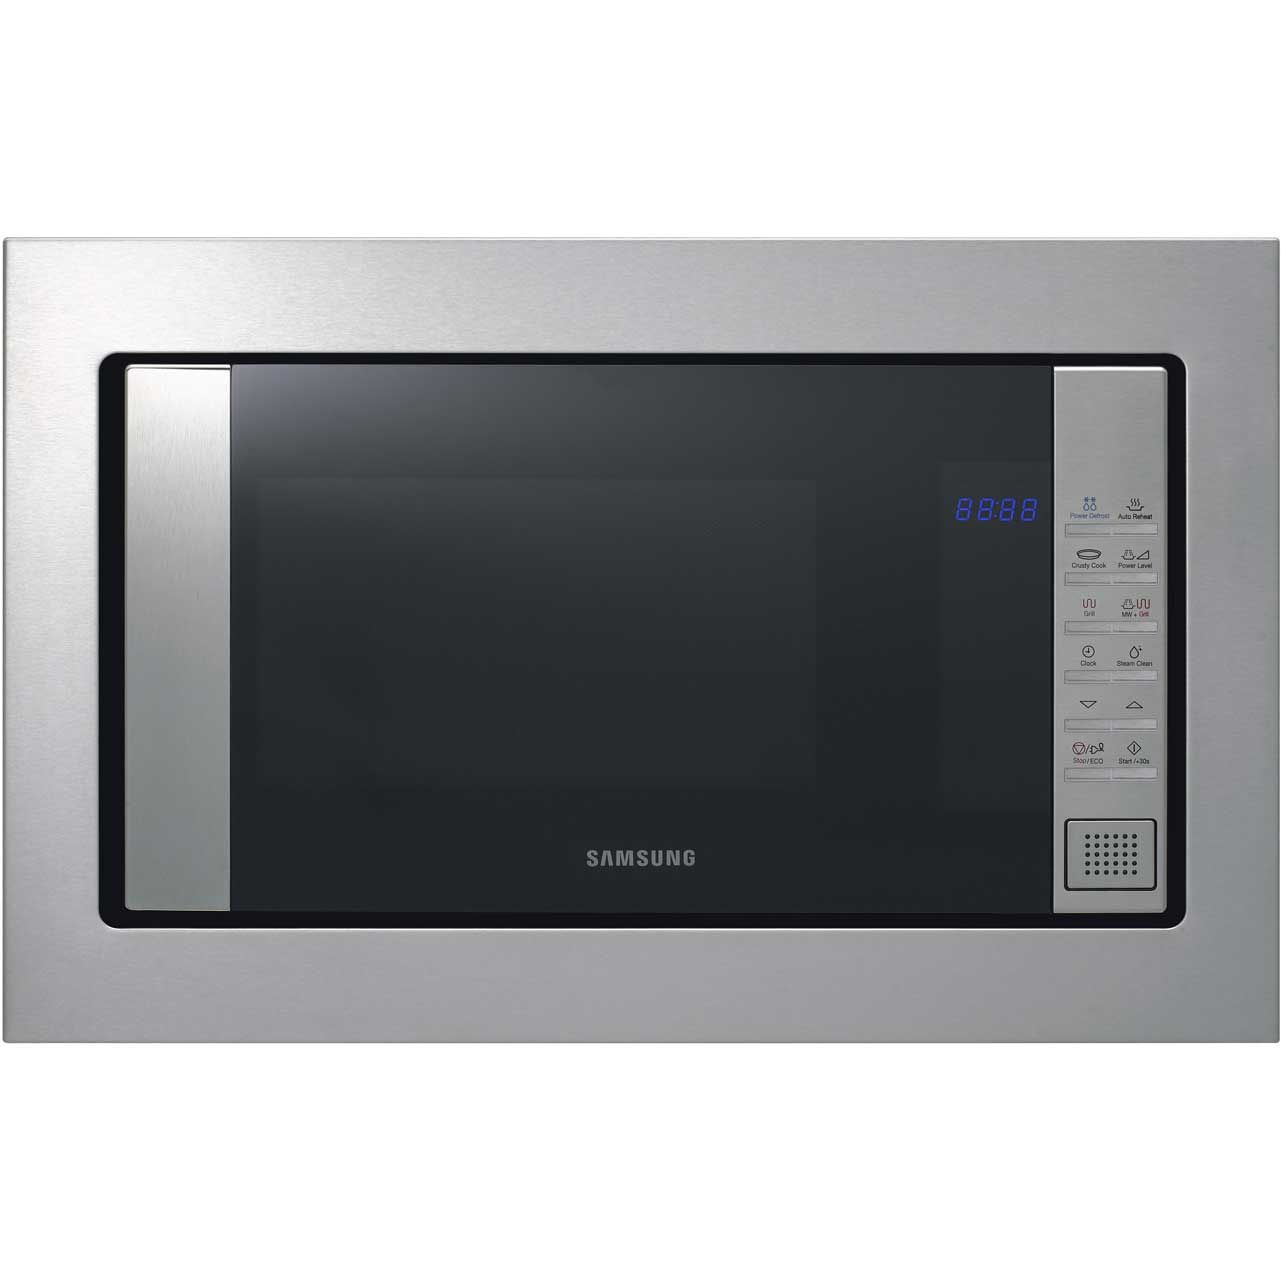 300 Samsung Fg87sust Built In Compact Microwave With Grill Stainless Steel